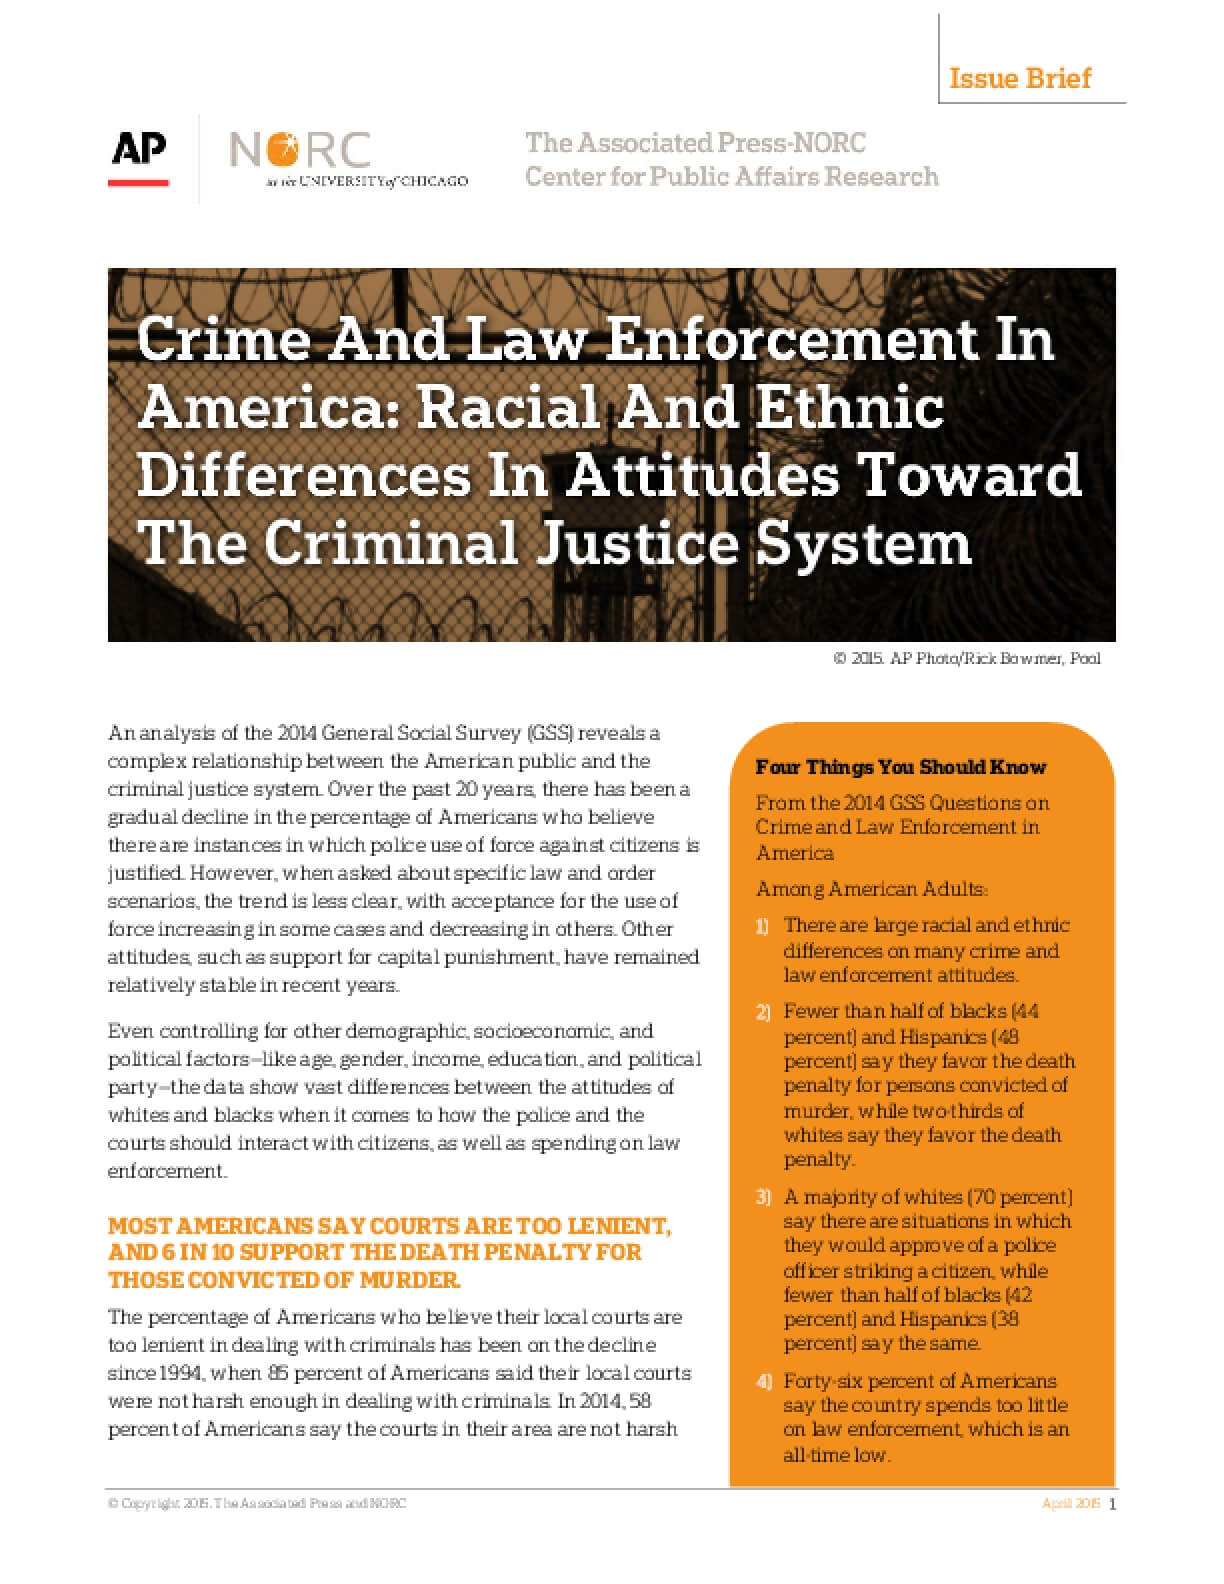 Crime And Law Enforcement In  America: Racial And Ethnic  Differences In Attitudes Toward  The Criminal Justice System